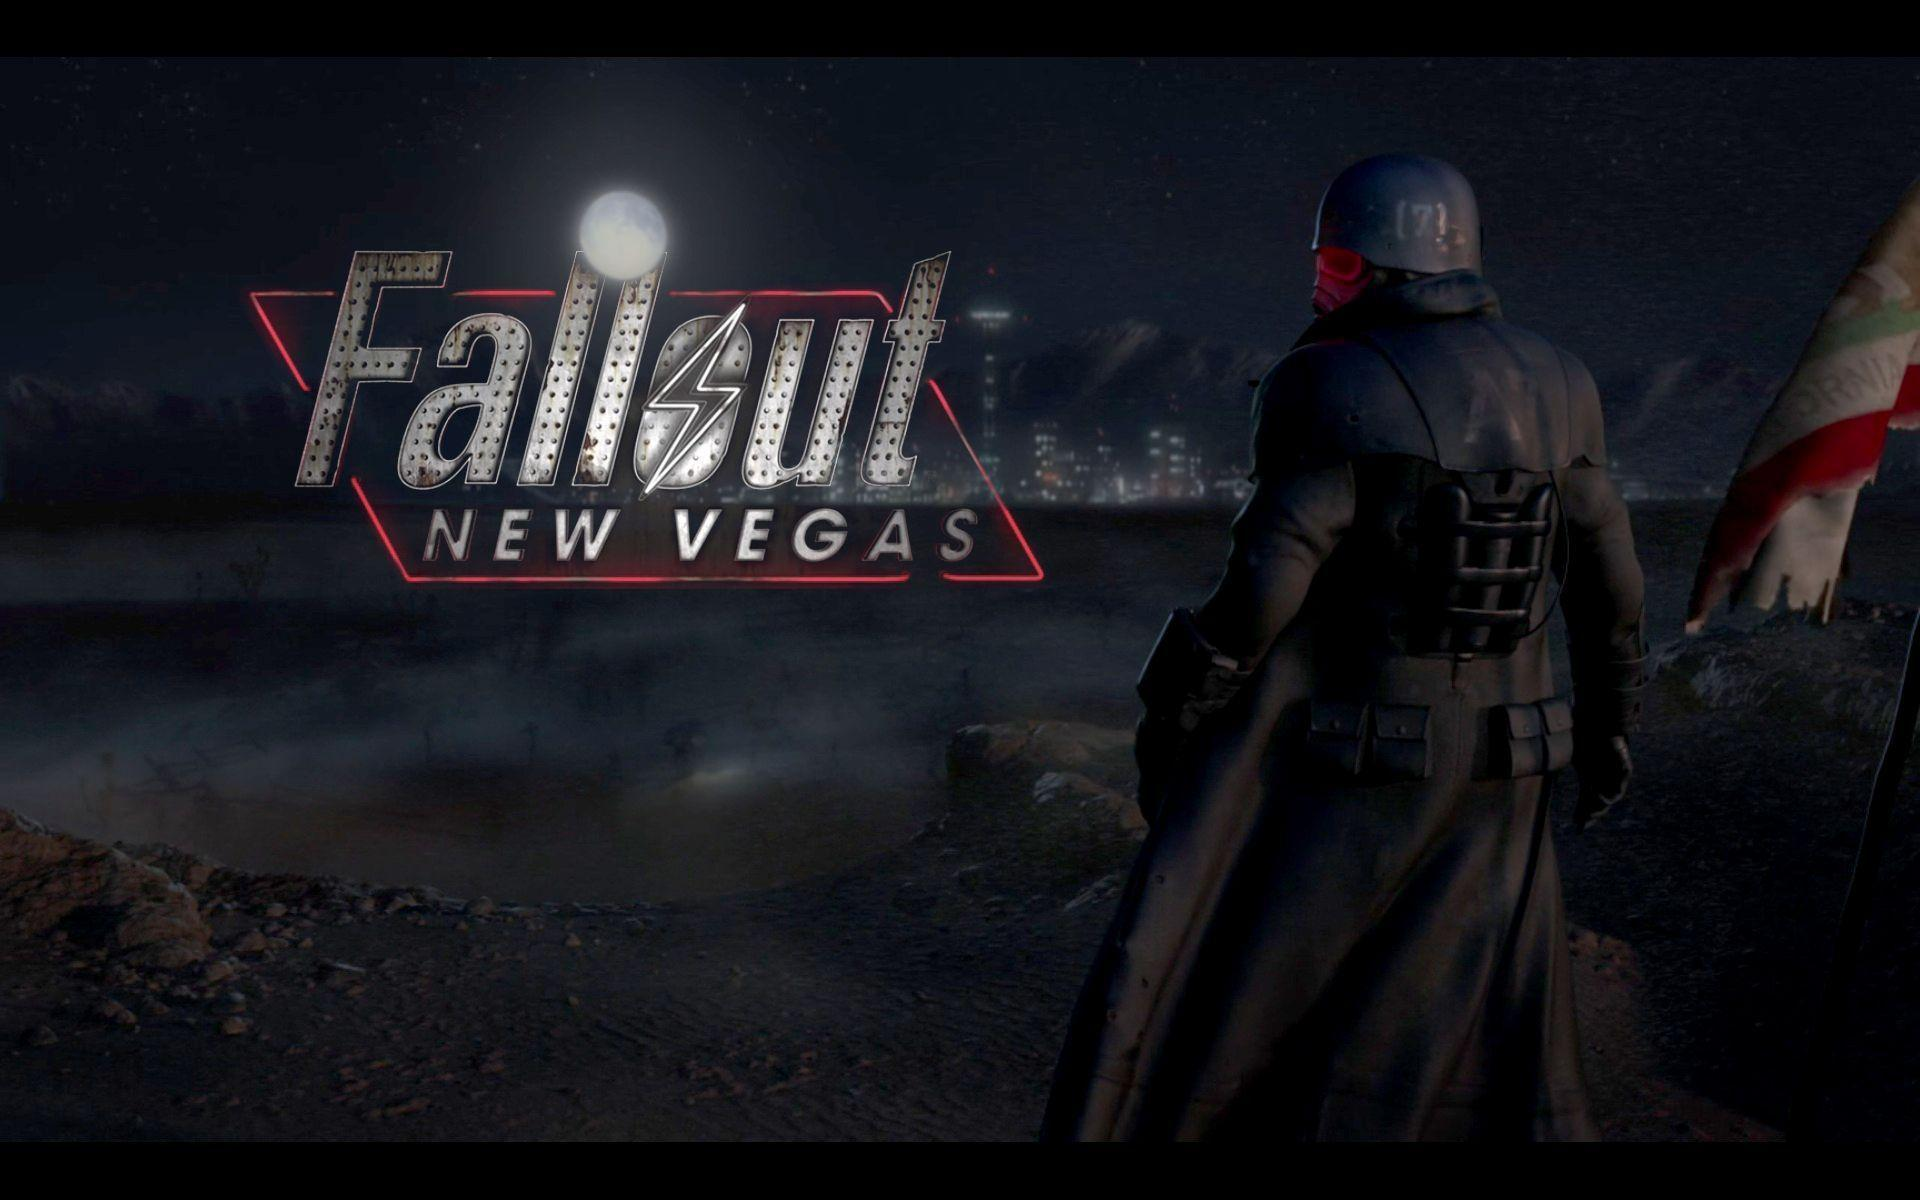 fallout nv wallpaper - photo #8